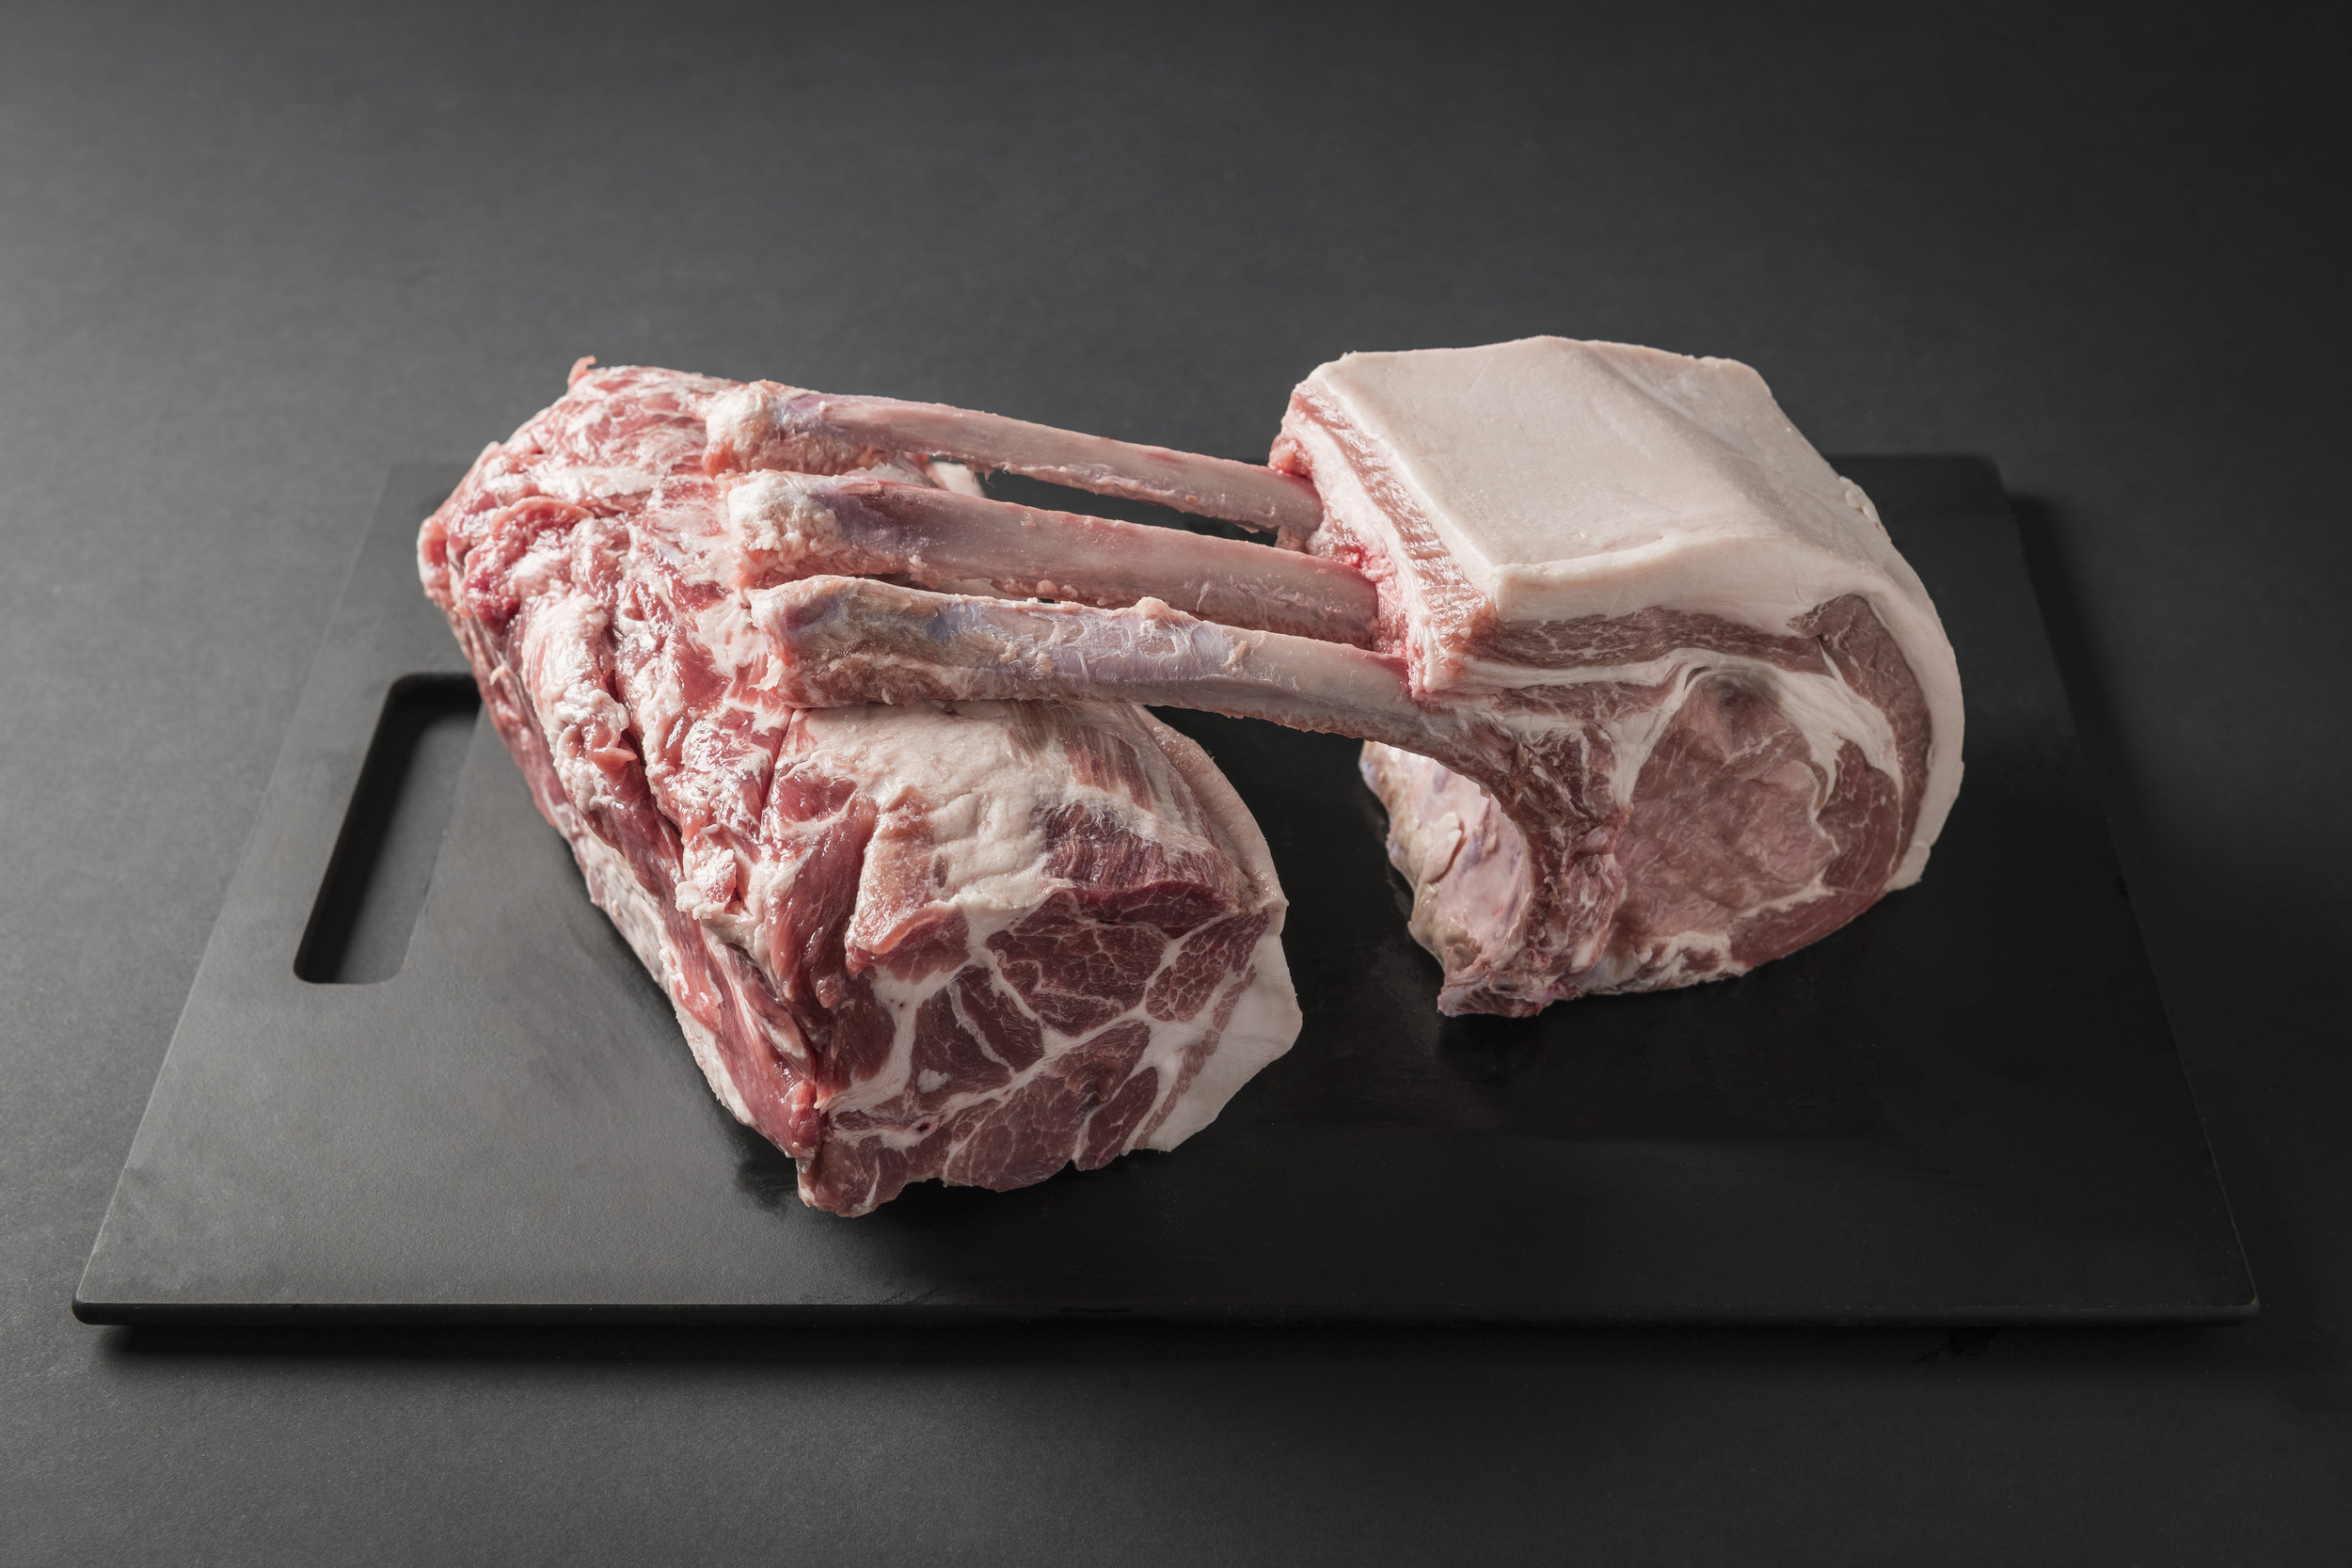 Japanese Saga Buta - We source our Japanese pork from the Saga Prefecture, thus the name Saga-Buta; Buta being the Japanese word for pork. They are raised along the Midori Mountains which overlook the Arkiake Sea. A white skinned pig that is composed of various breeds like Duroc, Middlewhite and Landrace, they were bred to produce superior pork that is also high in Vitamin B1. The farmers dedication to produce quality pork goes hand in hand with their desire to raise the pigs to be healthy well cared for animals.